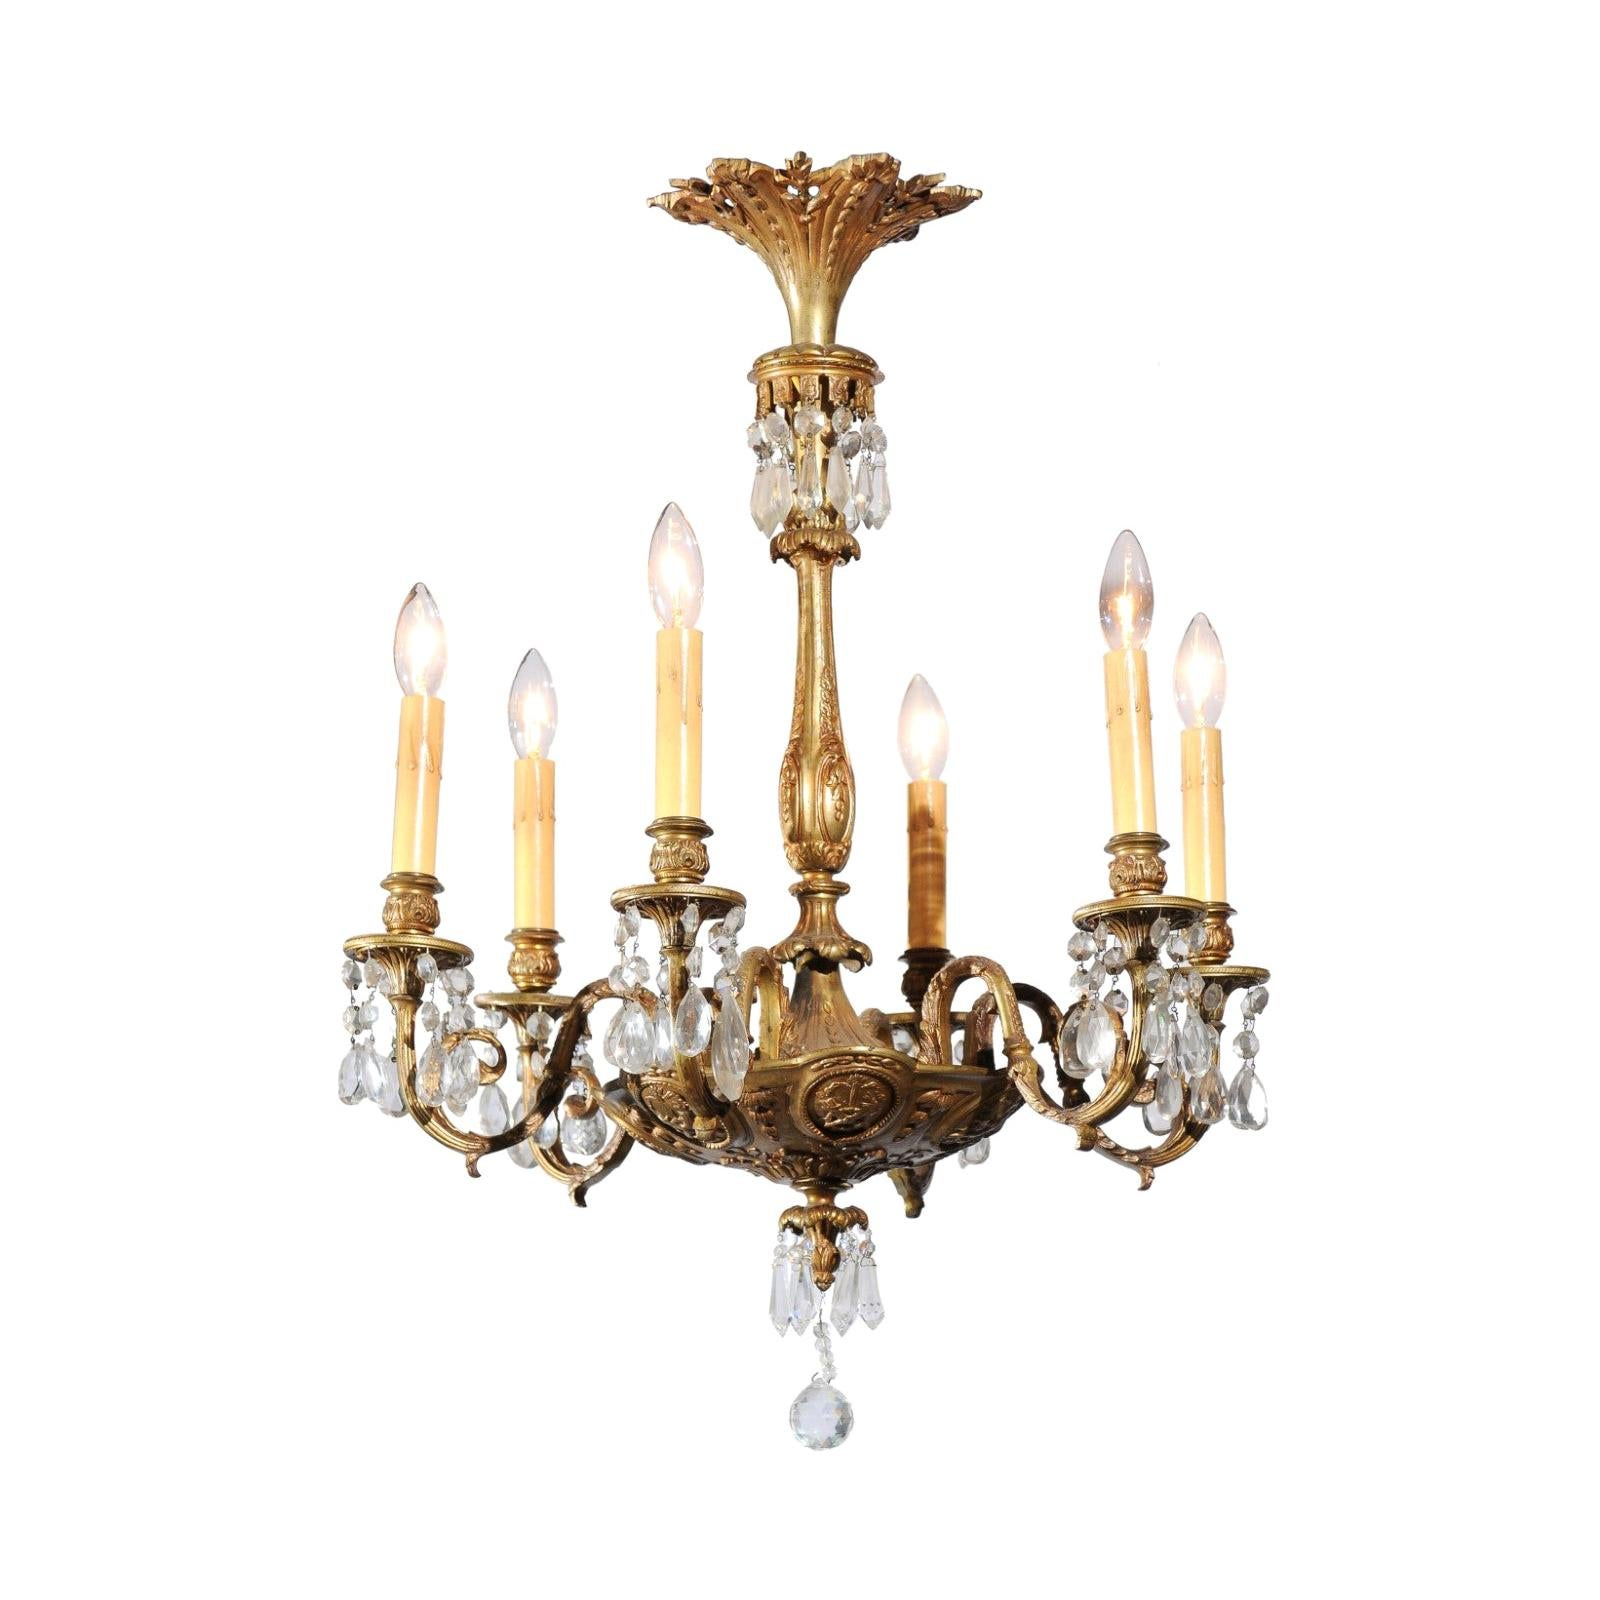 French Louis XVI Style Bronze and Crystal Six-Light Chandelier with Foliage